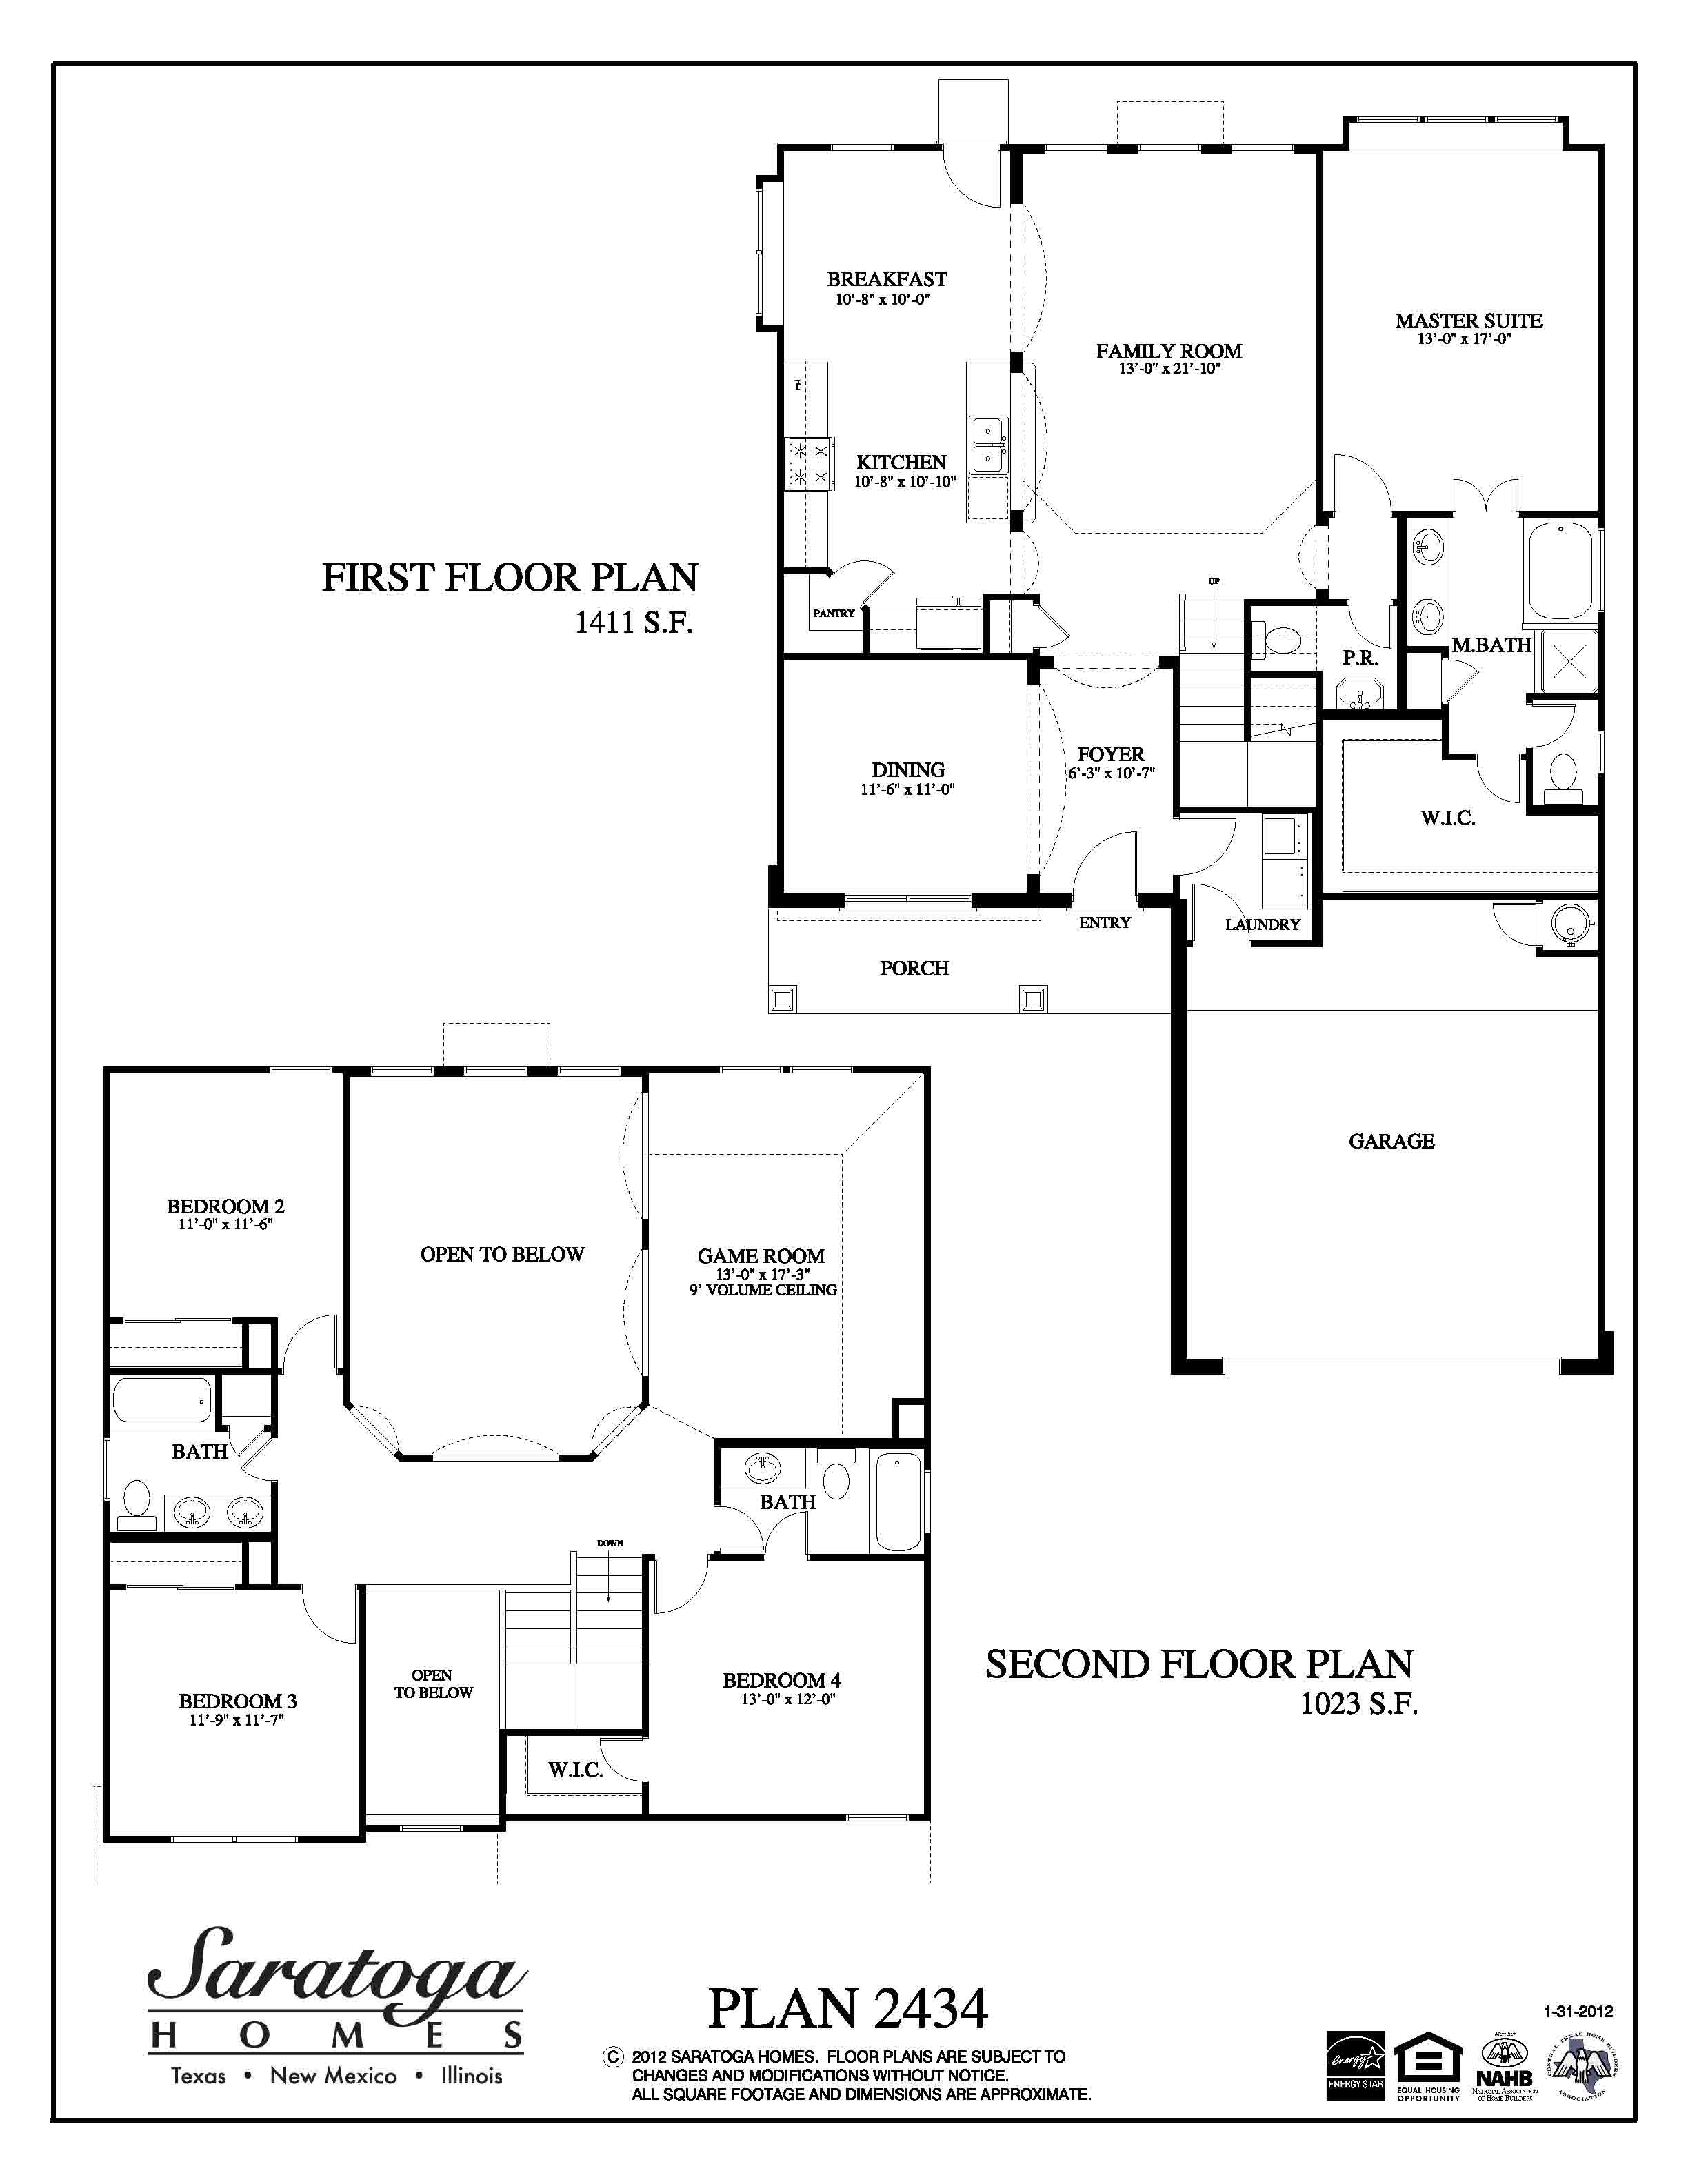 Plan 2434 saratoga homes houston for Floor plans for homes in texas